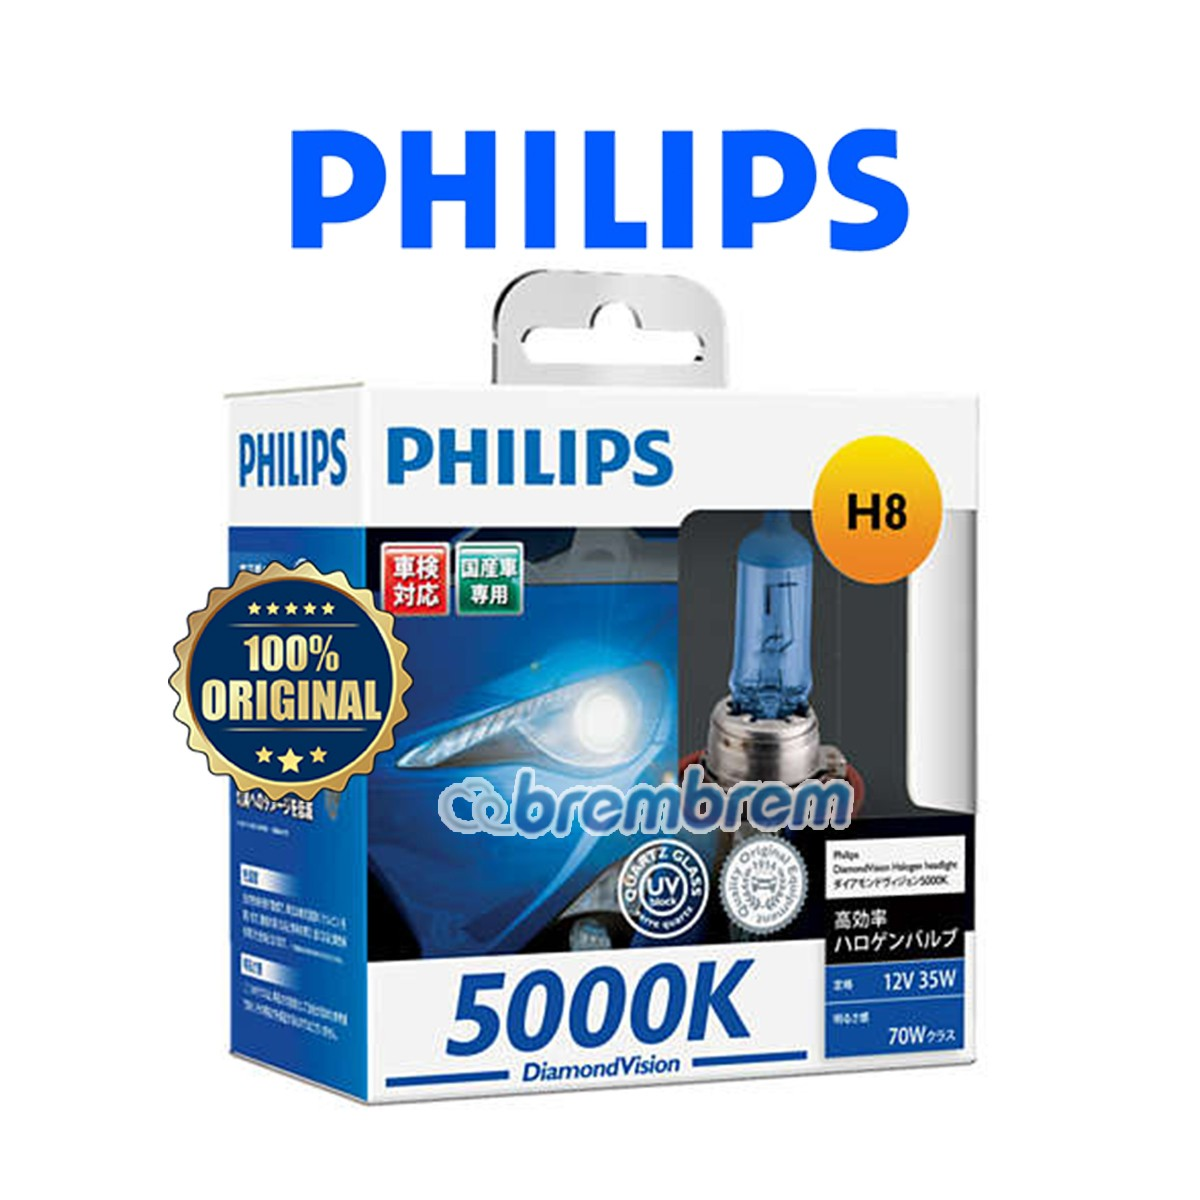 PHILIPS DIAMOND VISION H8 (5000K) - LAMPU HALOGEN